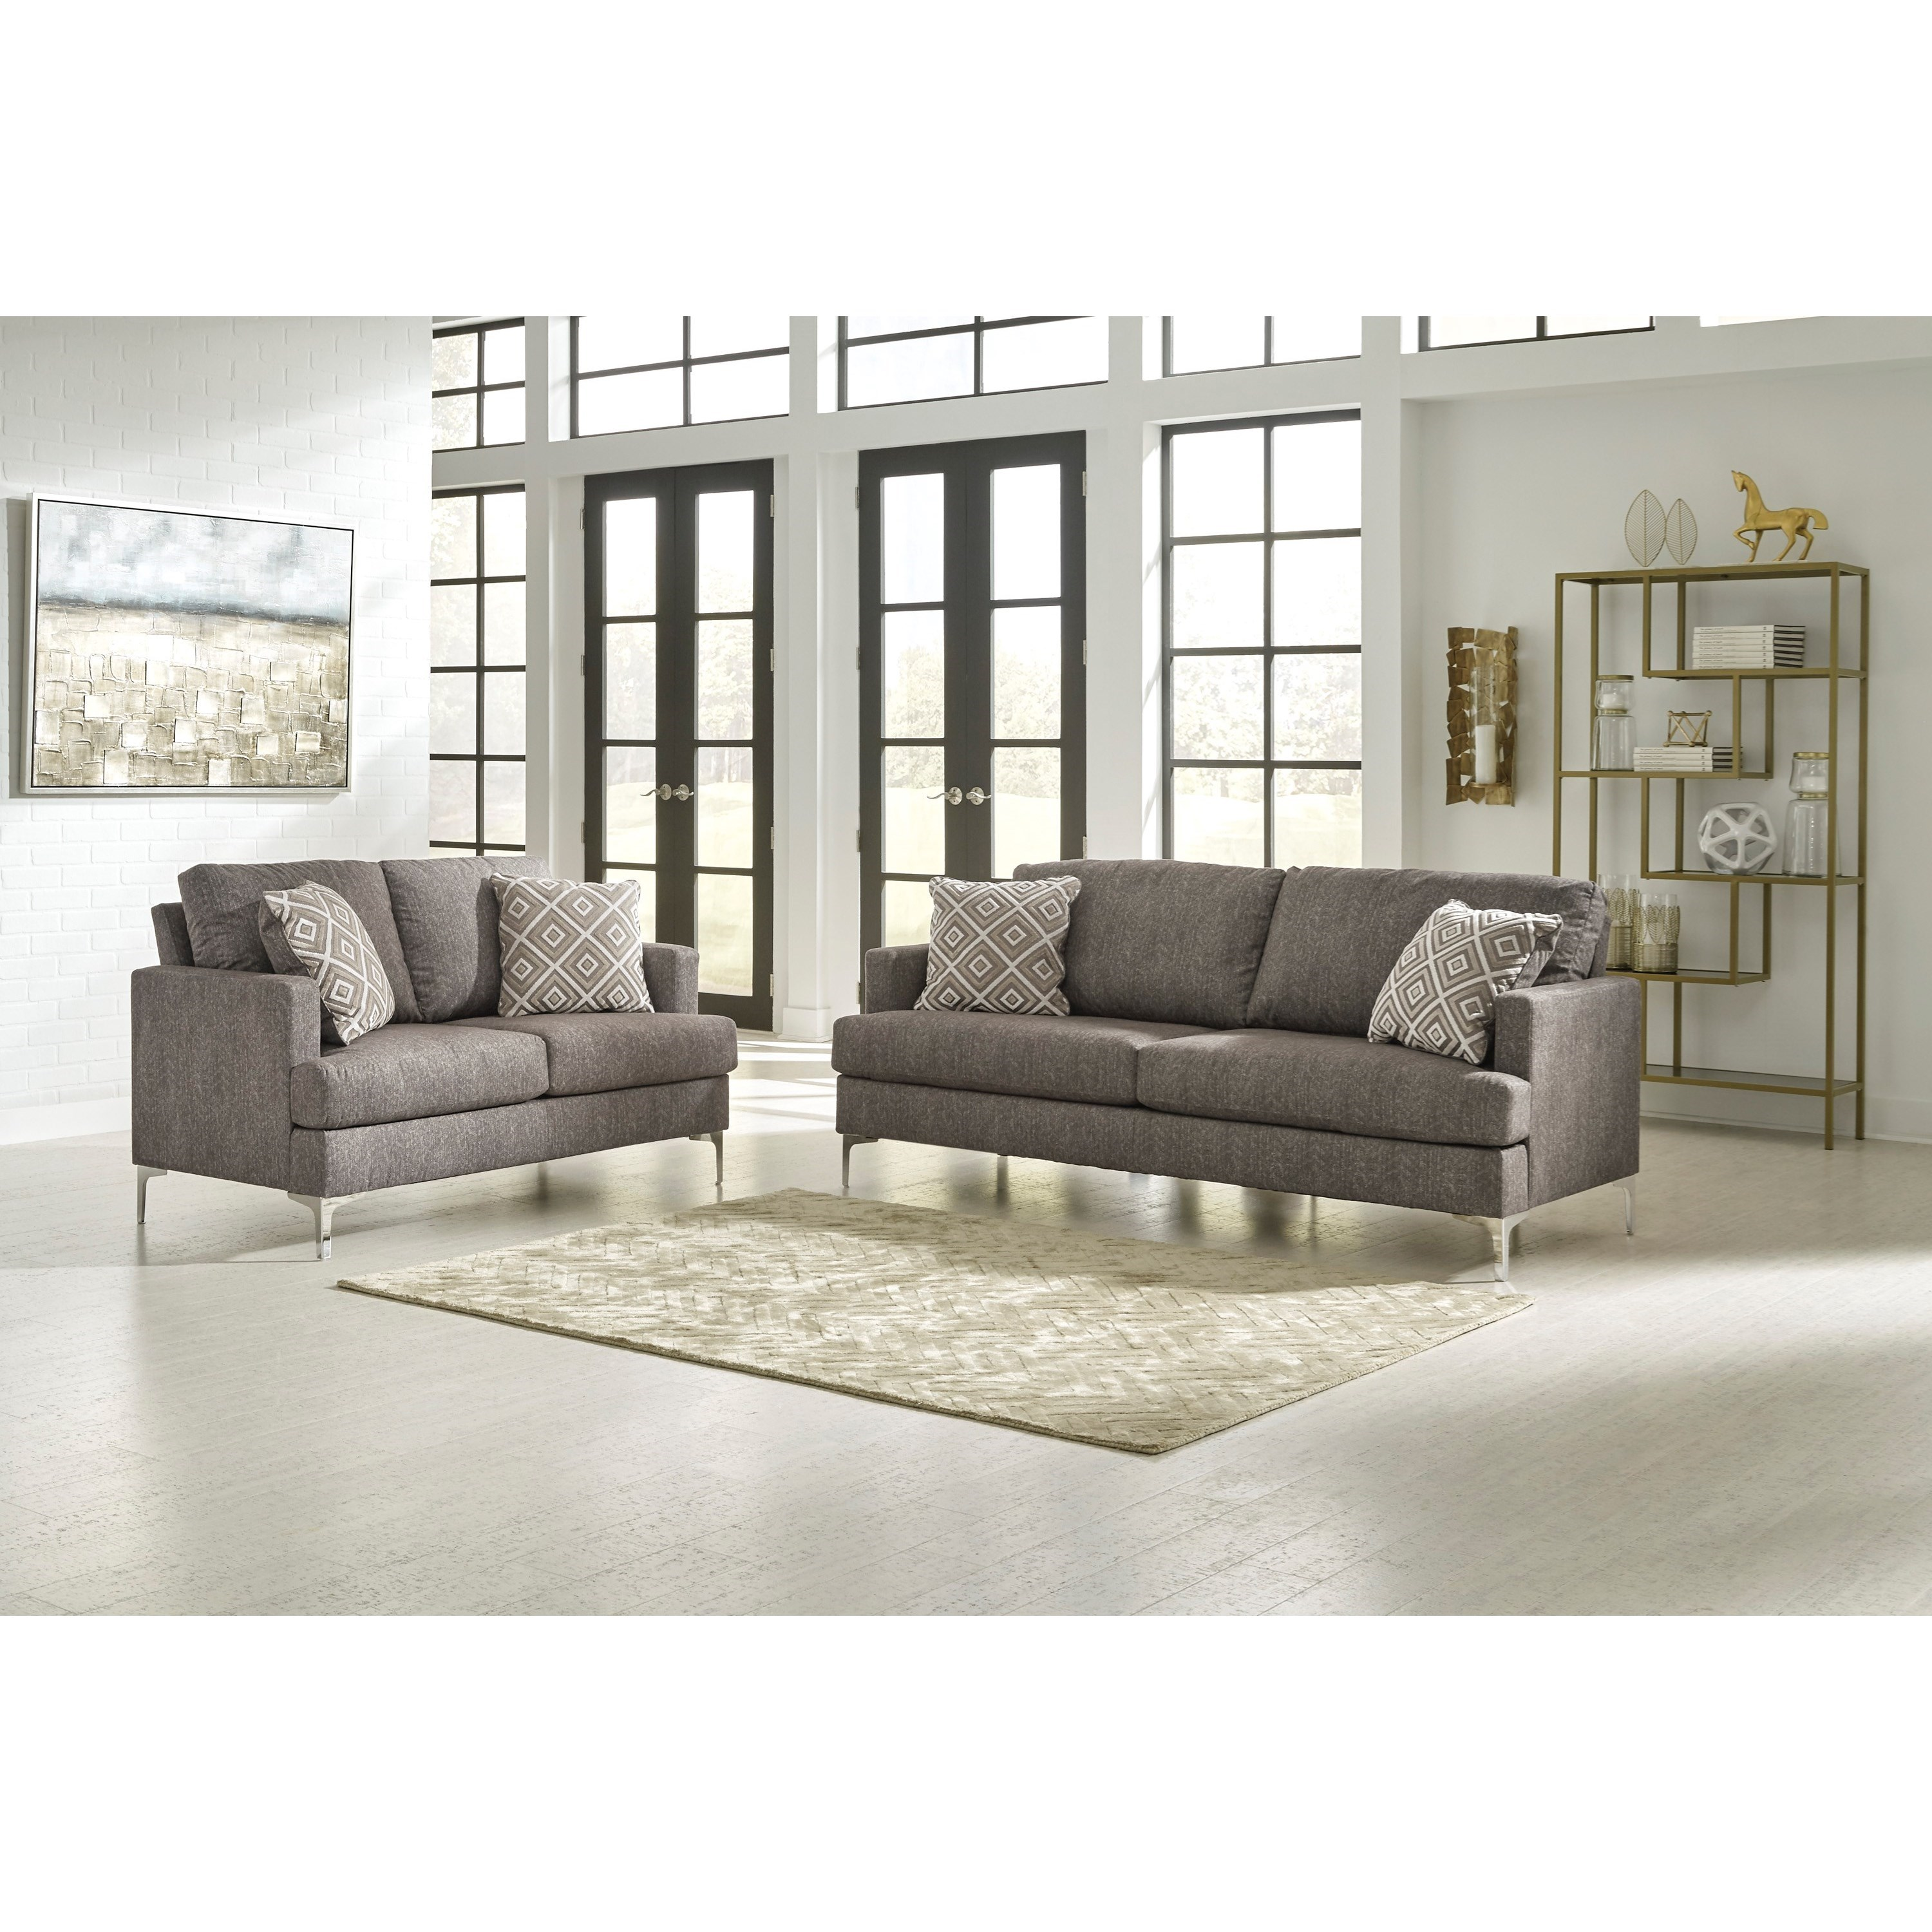 Arcola Stationary Living Room Group by Signature Design by Ashley at Rife's Home Furniture